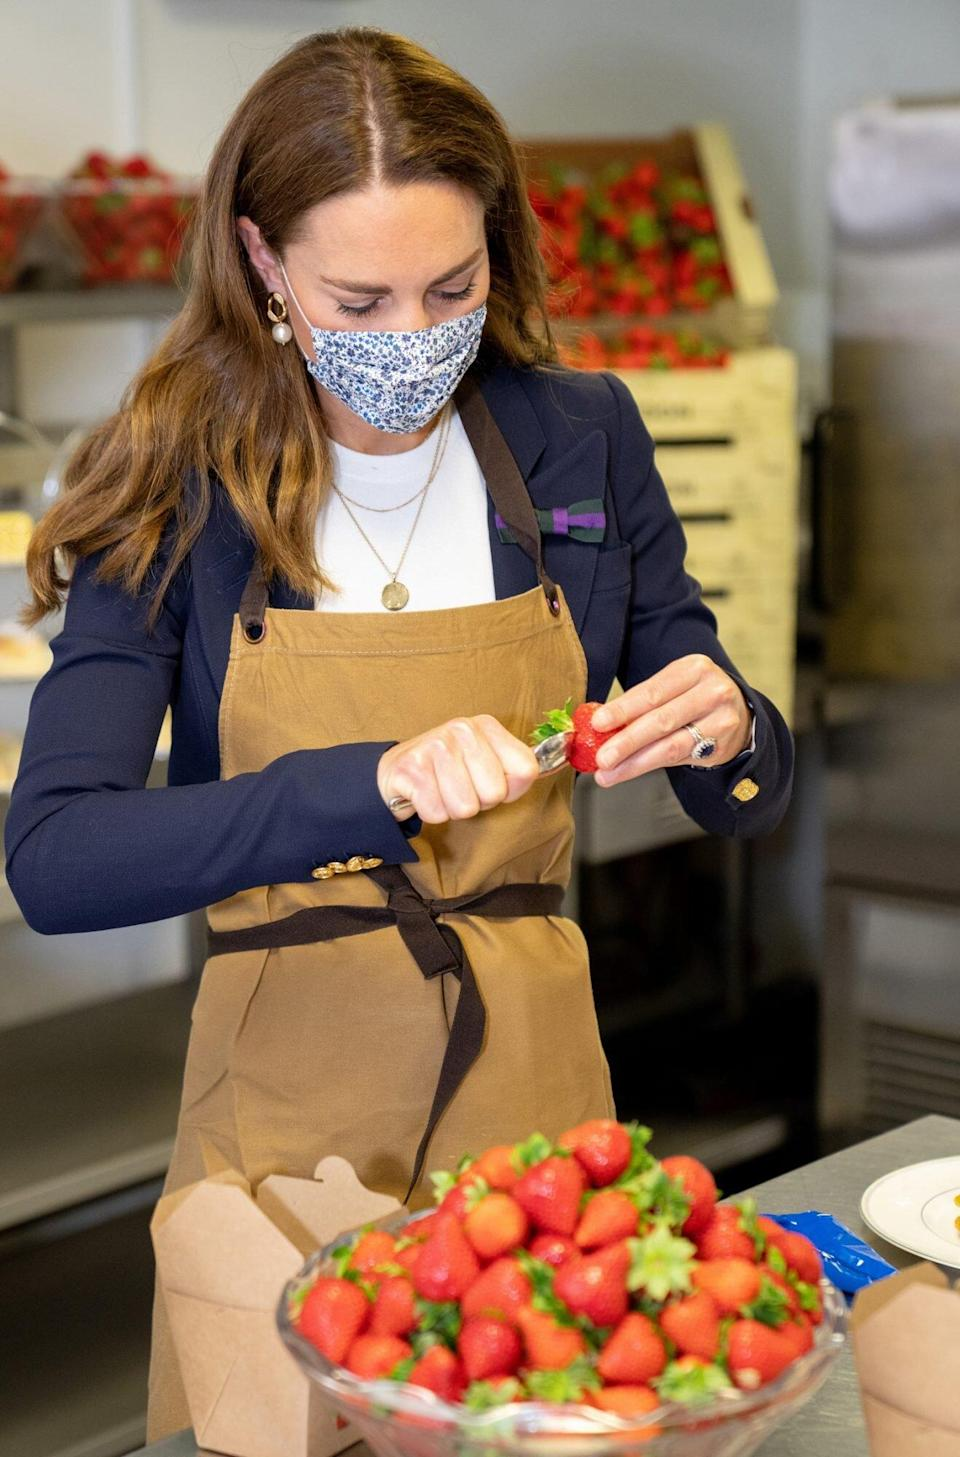 HRH Catherine, The Duchess of Cambridge, Patron of the All England Lawn Tennis Club, tries her hand at preparing some of the world famous Wimbledon strawberries